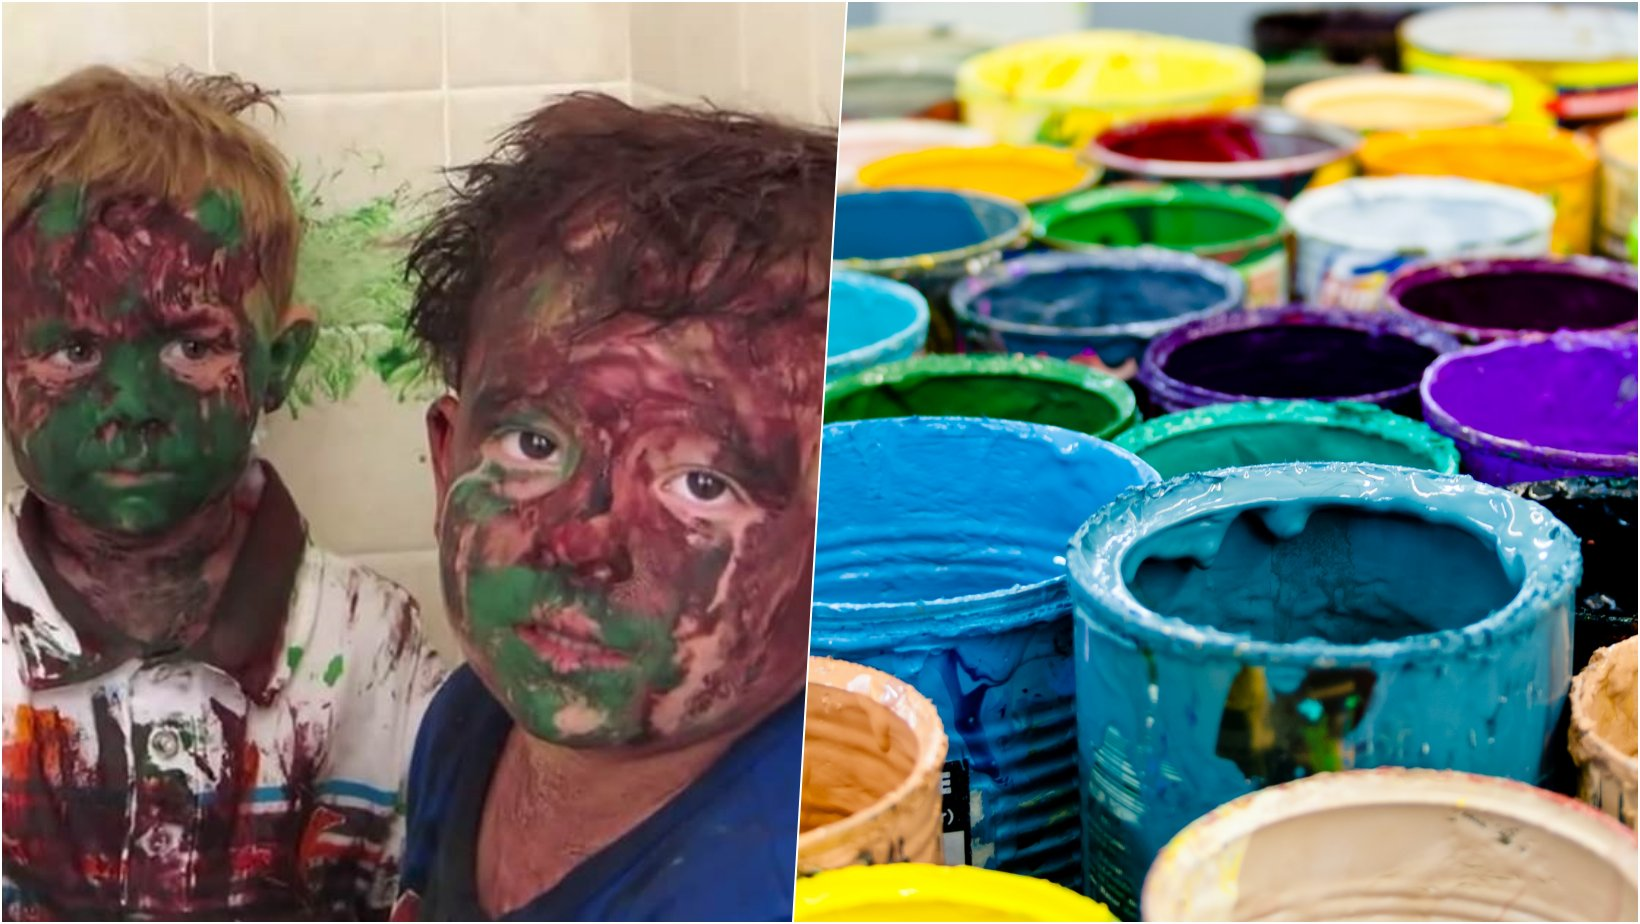 6 facebook cover 2.png?resize=1200,630 - Dad Can't Control His Laughter When He Tried To Scold His Kids Covered In Paint